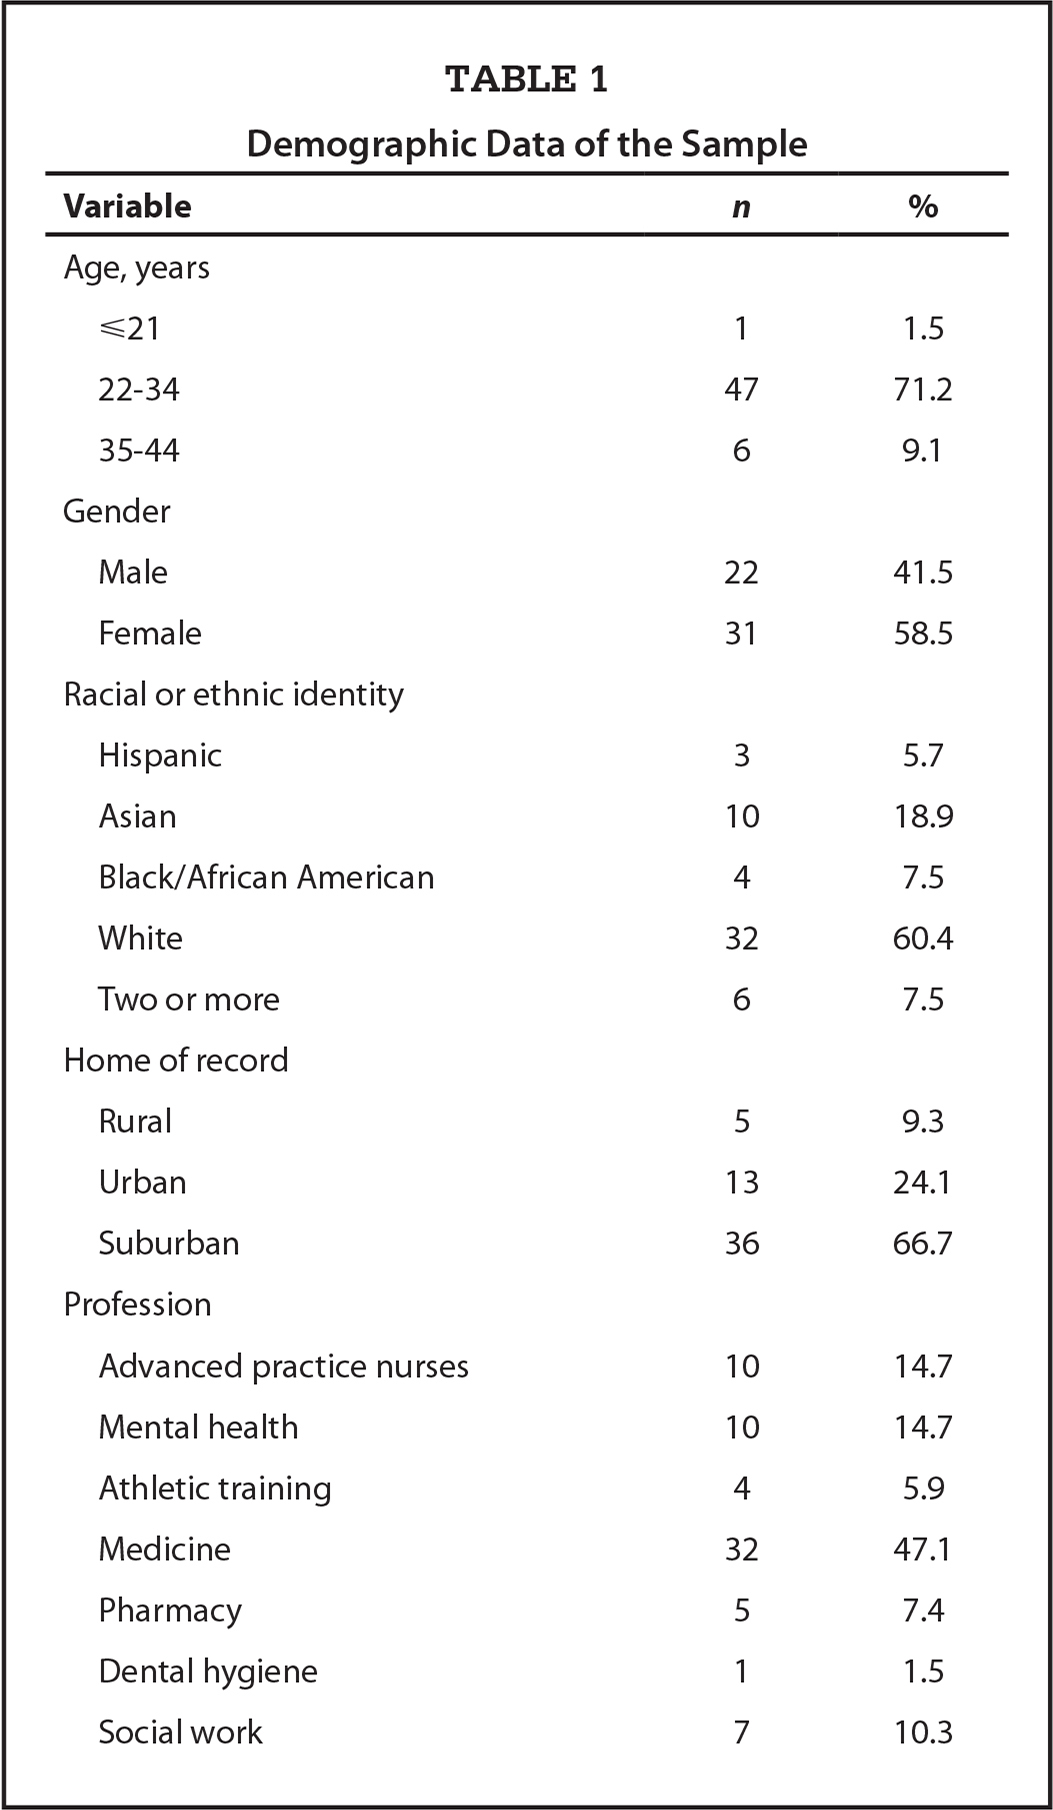 Demographic Data of the Sample